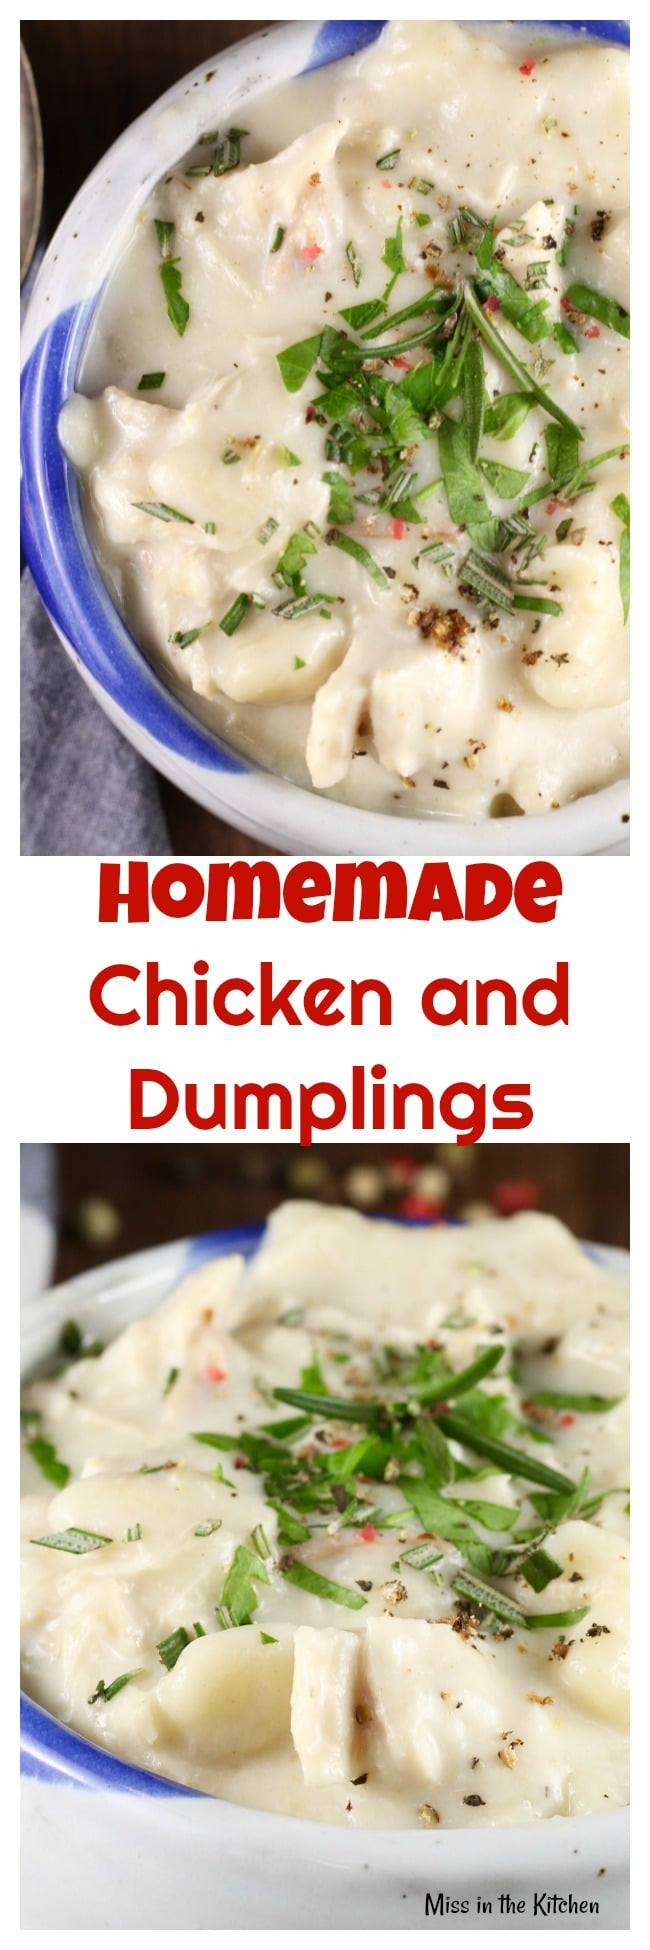 Homemade Chicken and Dumplings Recipe perfect for cold winter nights! MissintheKitchen.com #comfortfood #chicken